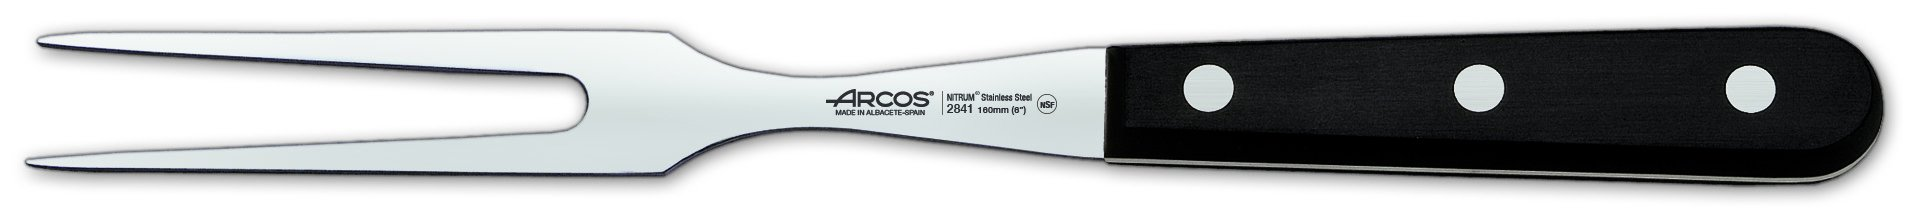 Arcos Universal 6-Inch Carving Fork